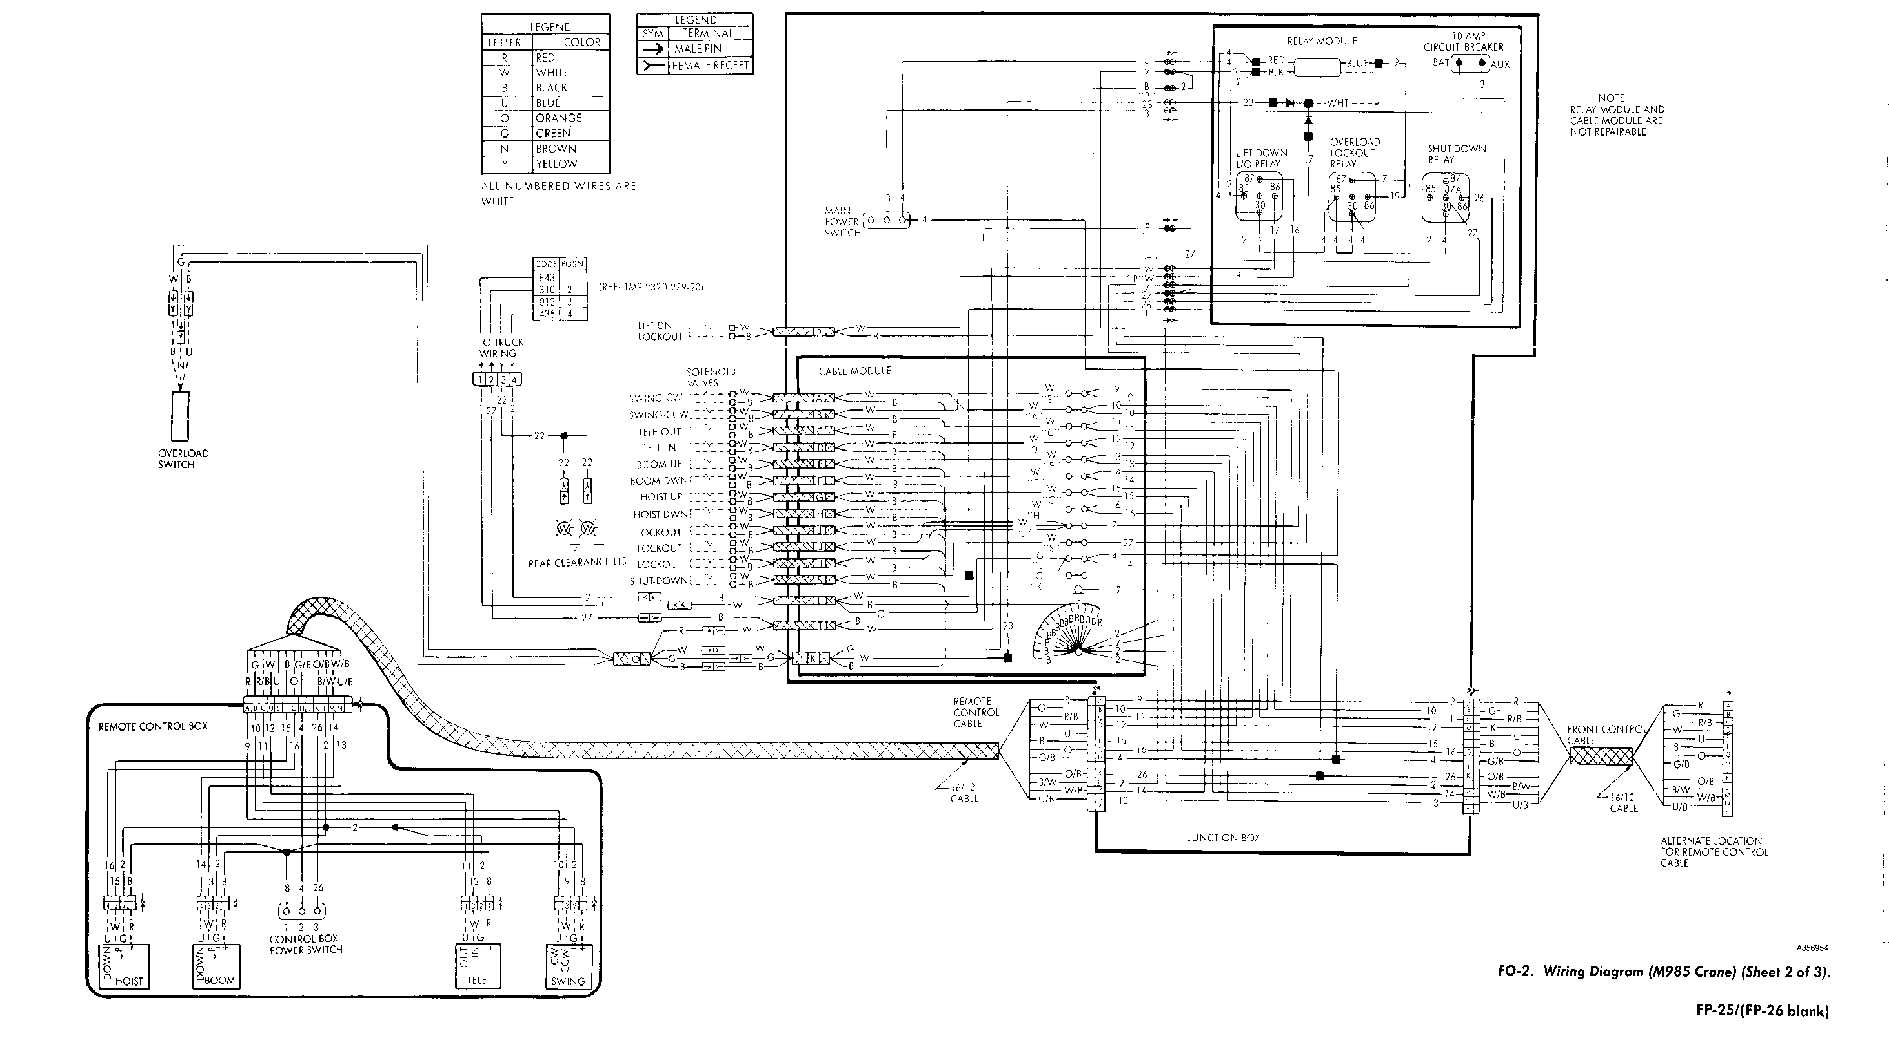 FO-2. Wiring Diagram (M985 Crane) (sheet 2 of 3)